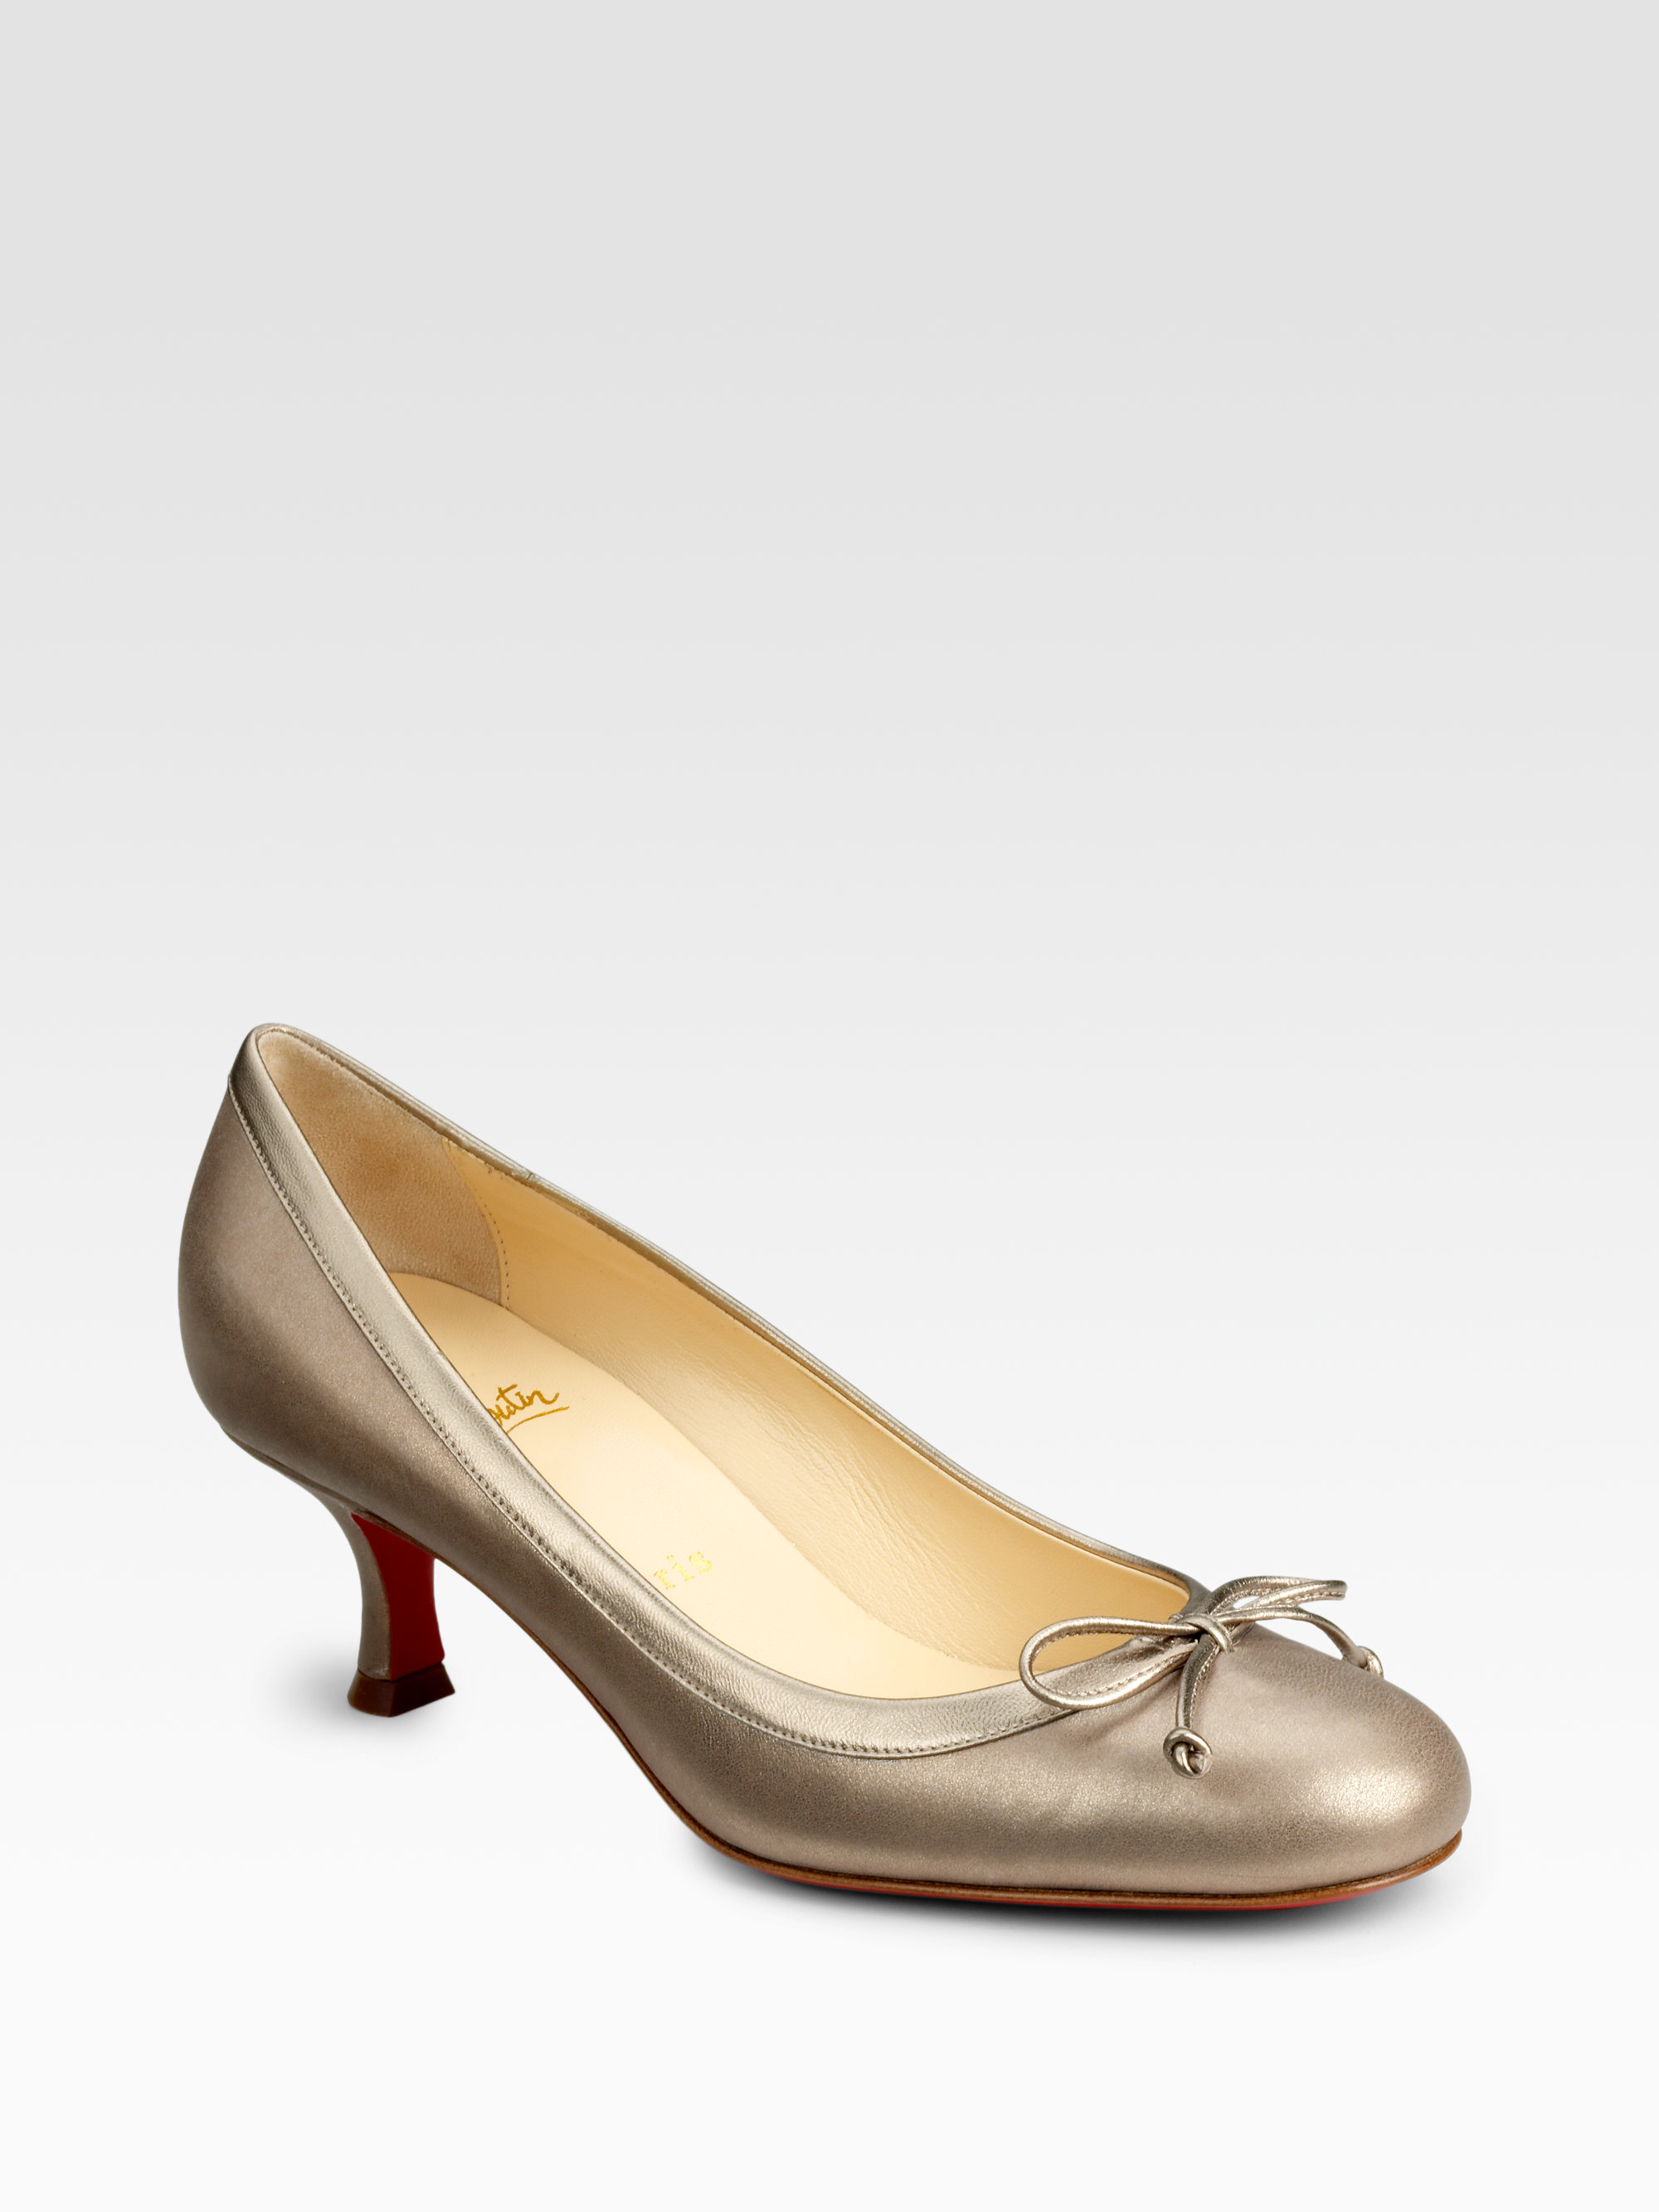 2014 new for sale official site sale online Christian Louboutin Marcia Balla 45 Pumps quality free shipping low price free shipping 2014 new QkRndbDa8